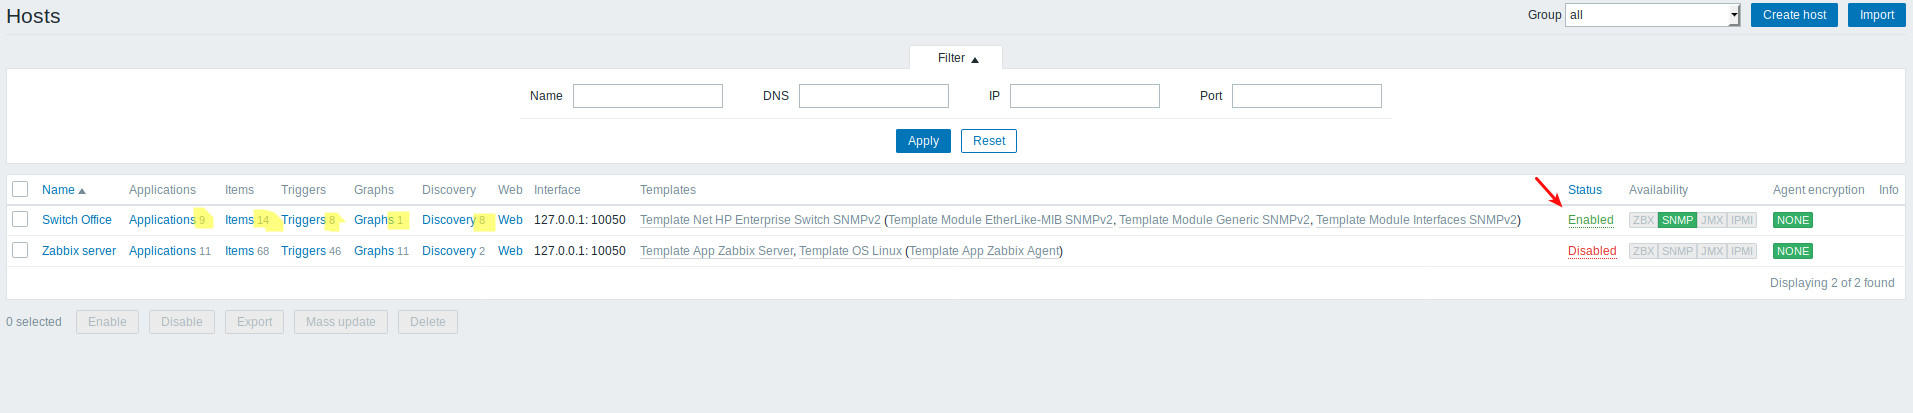 Monitor an HP Switch with Zabbix via SNMP - Ceos3c